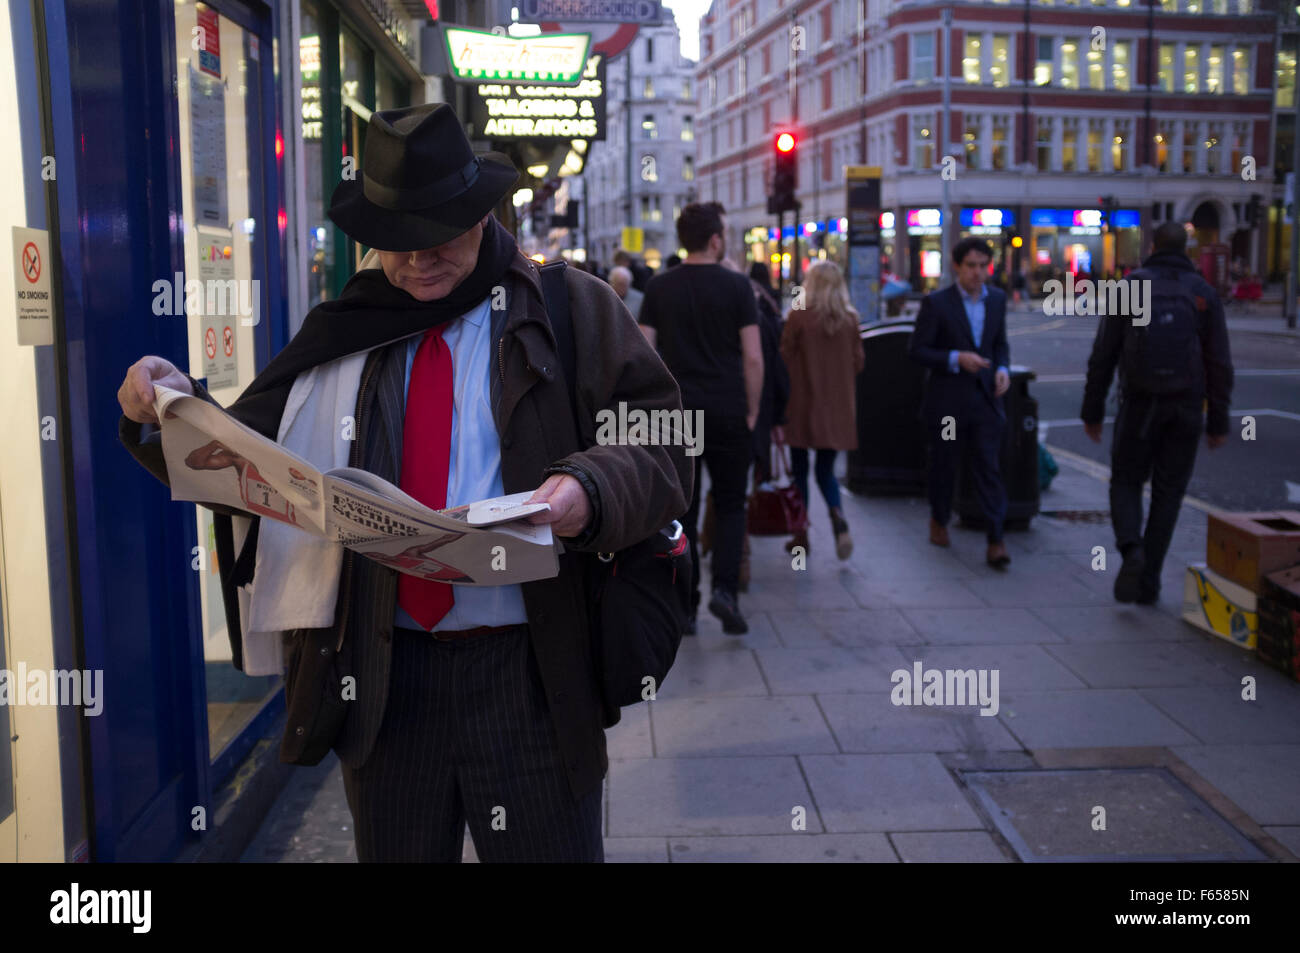 A city gent engrossed in the Evening Standard newspaper on a London street early evening - Stock Image